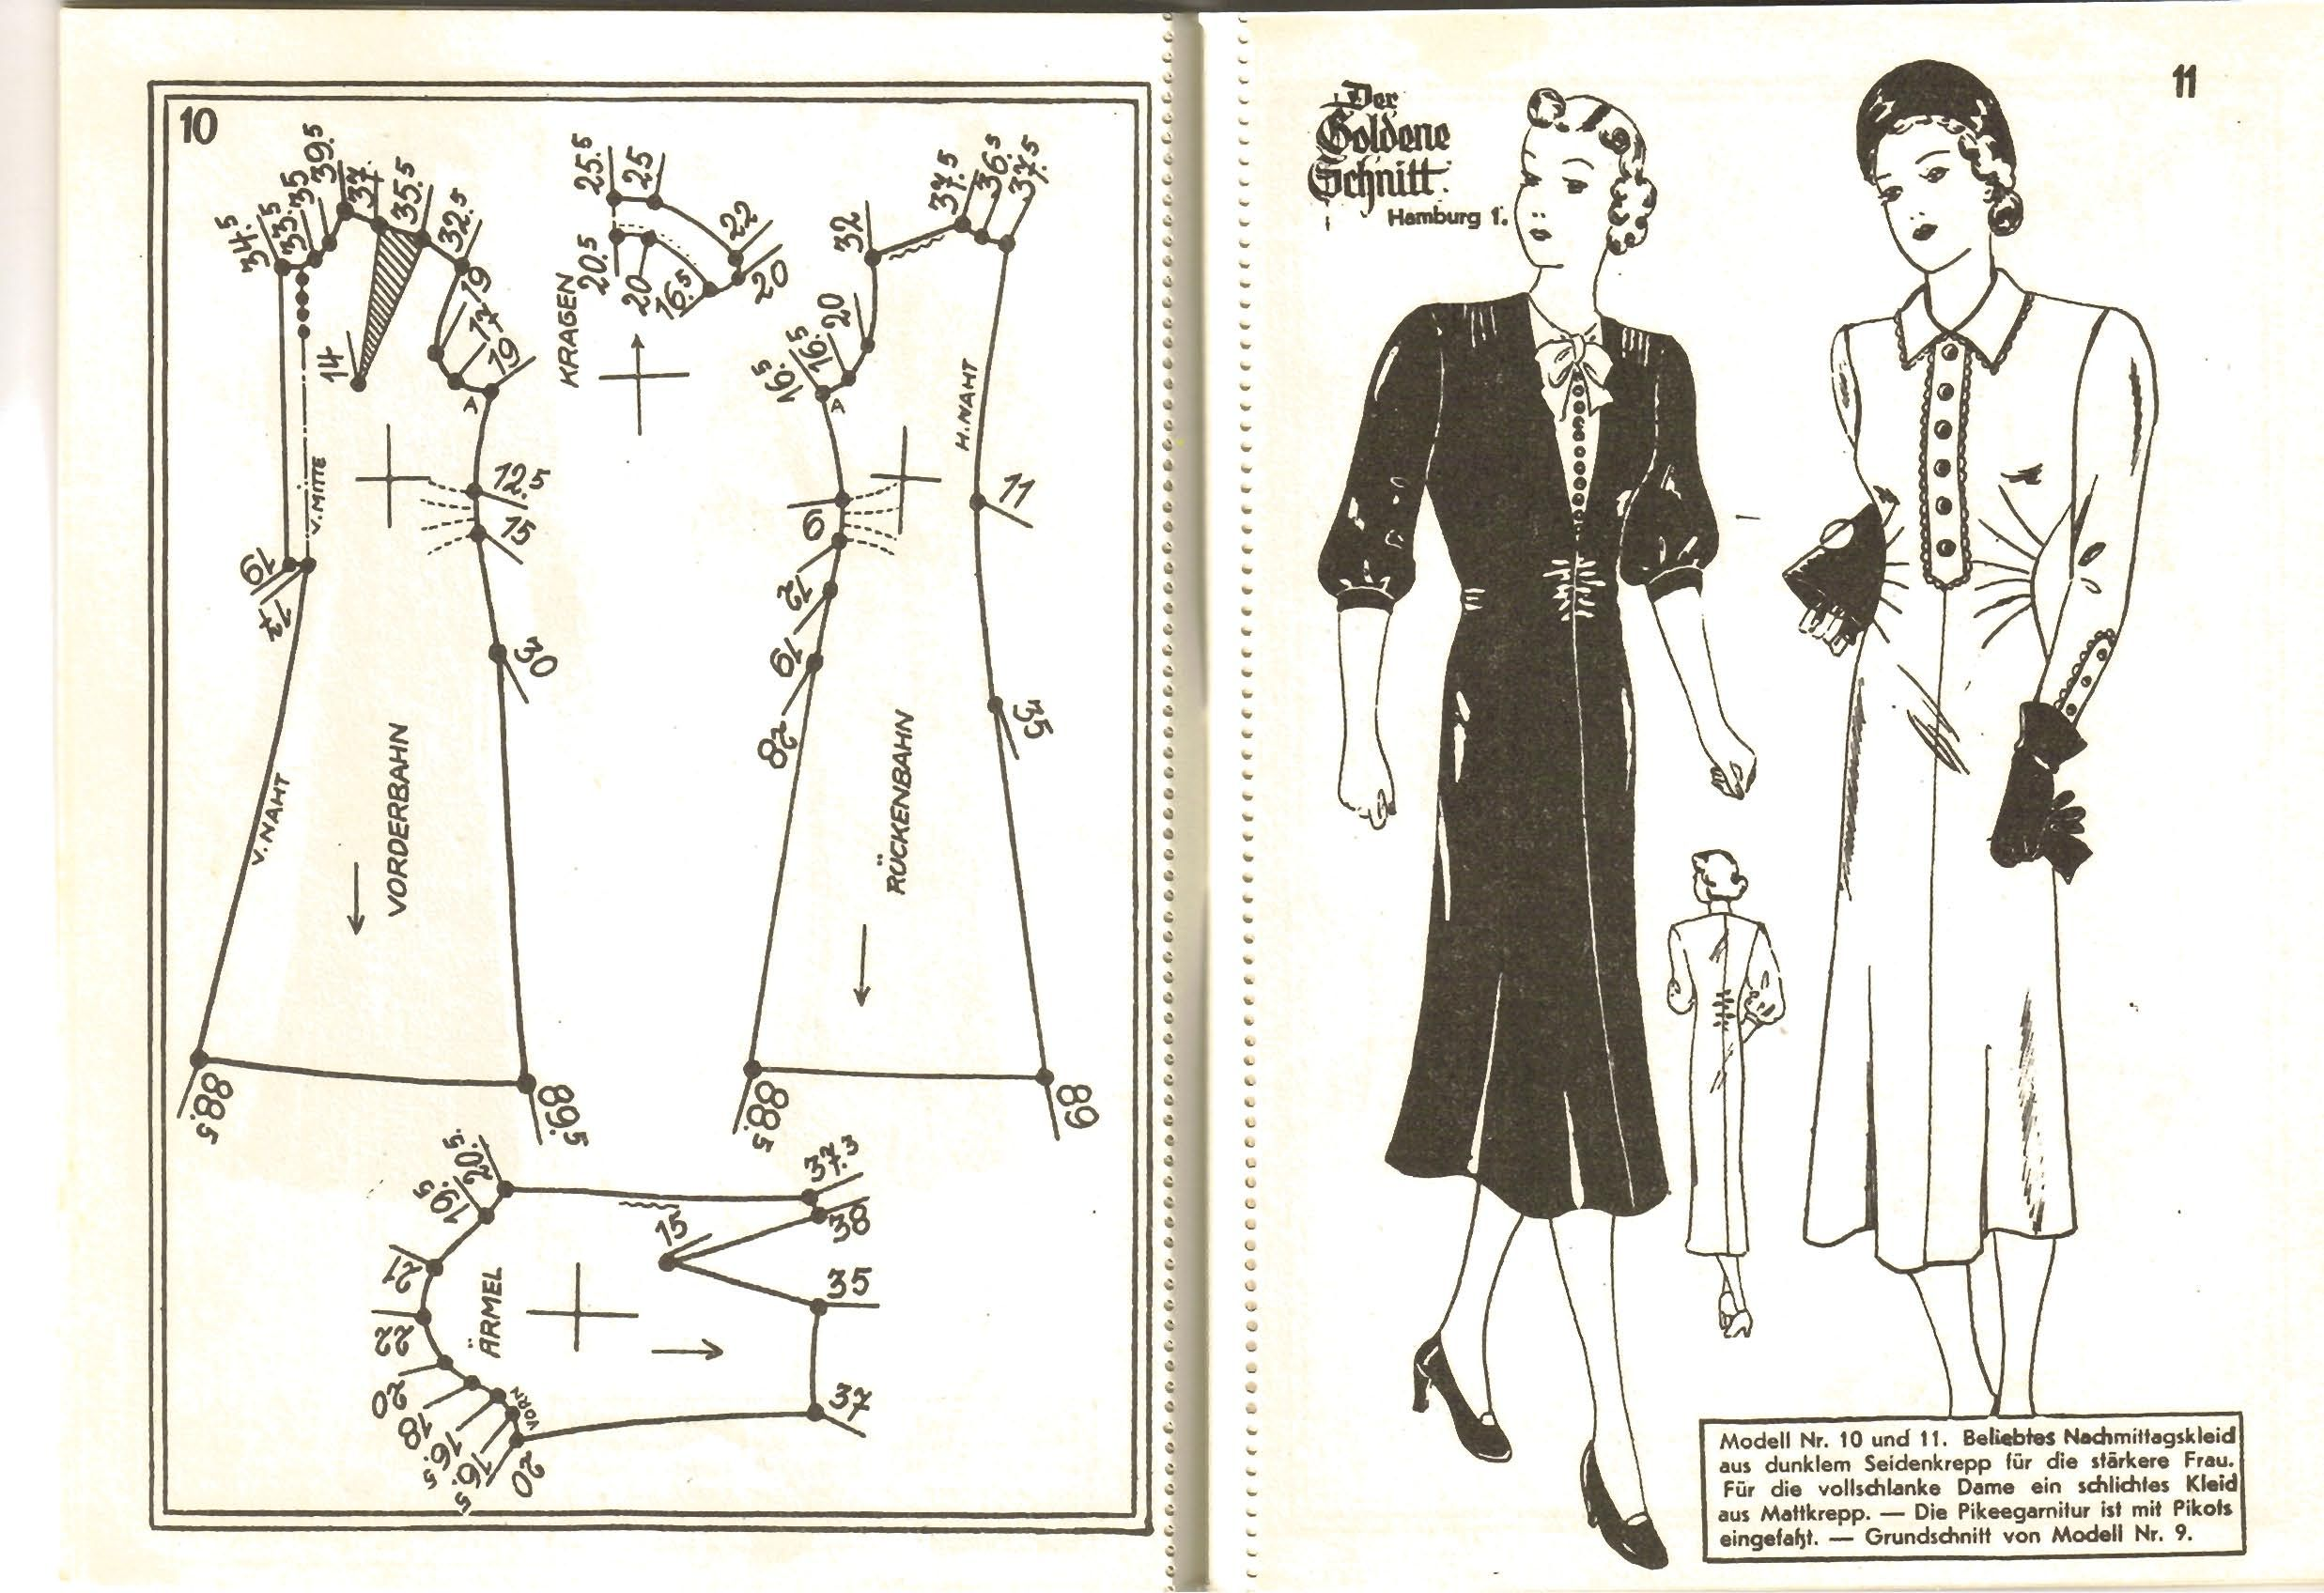 Lutterloh 1939 Book Of Cards - Models Diagram Card Page 10 & 11